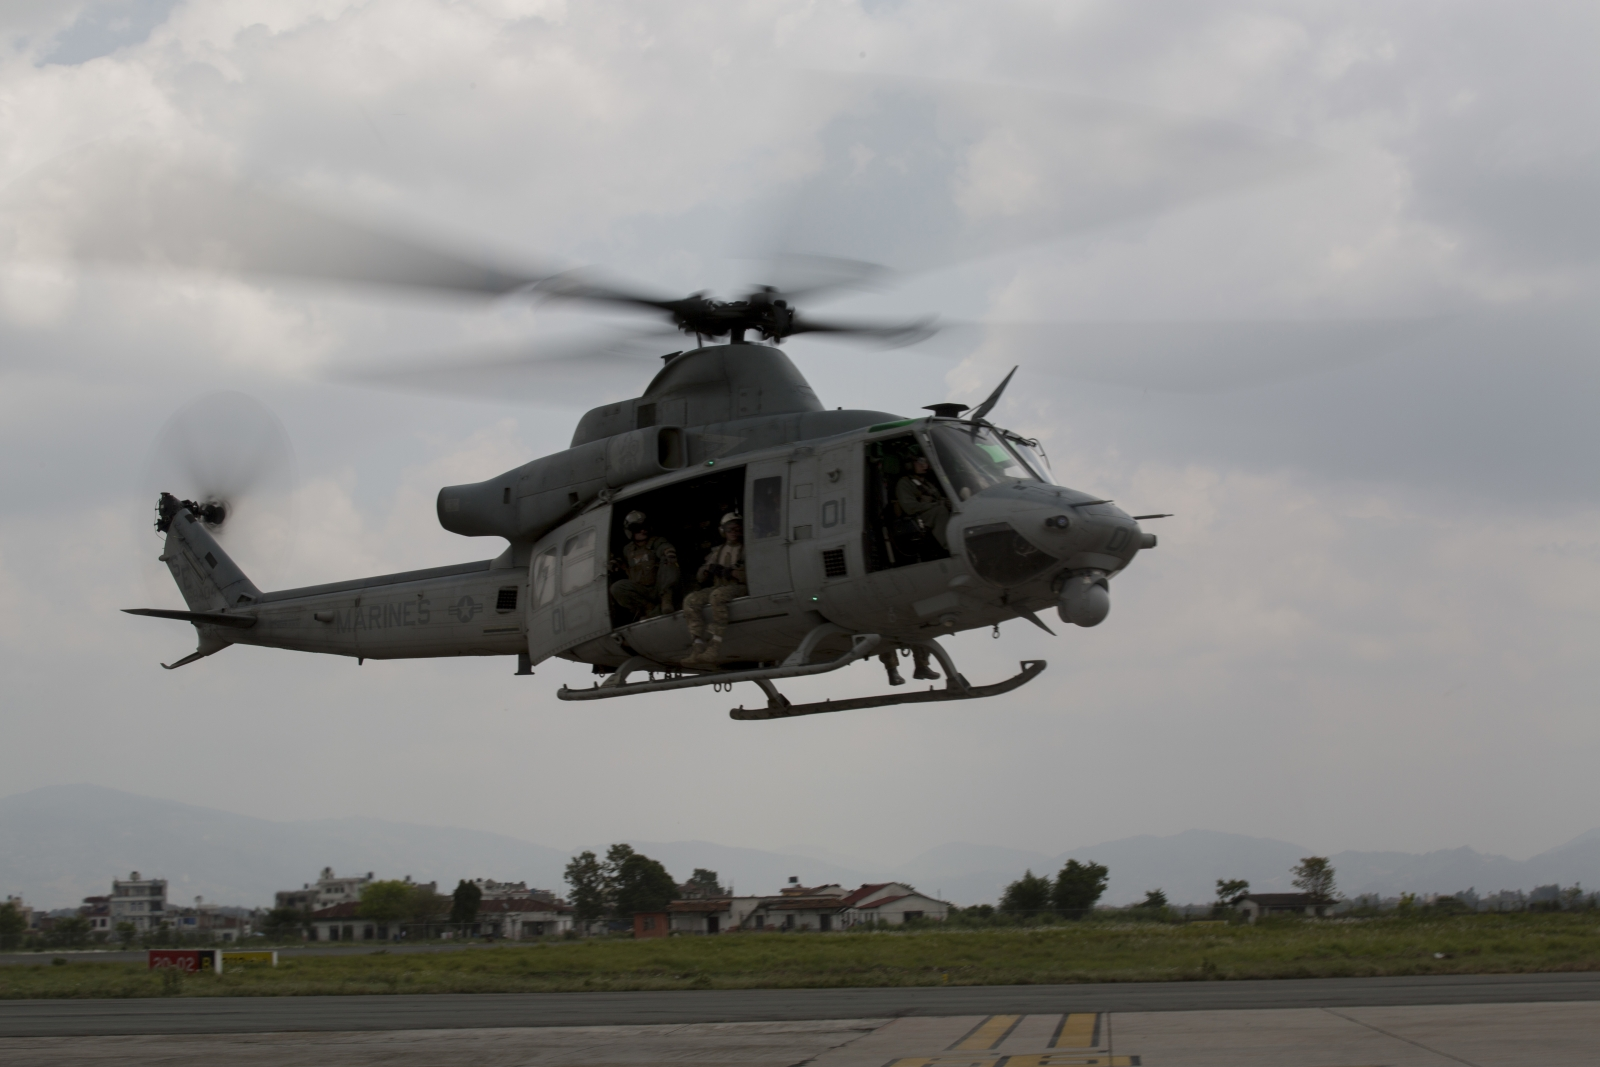 Nepal aid operations US helicopter crash